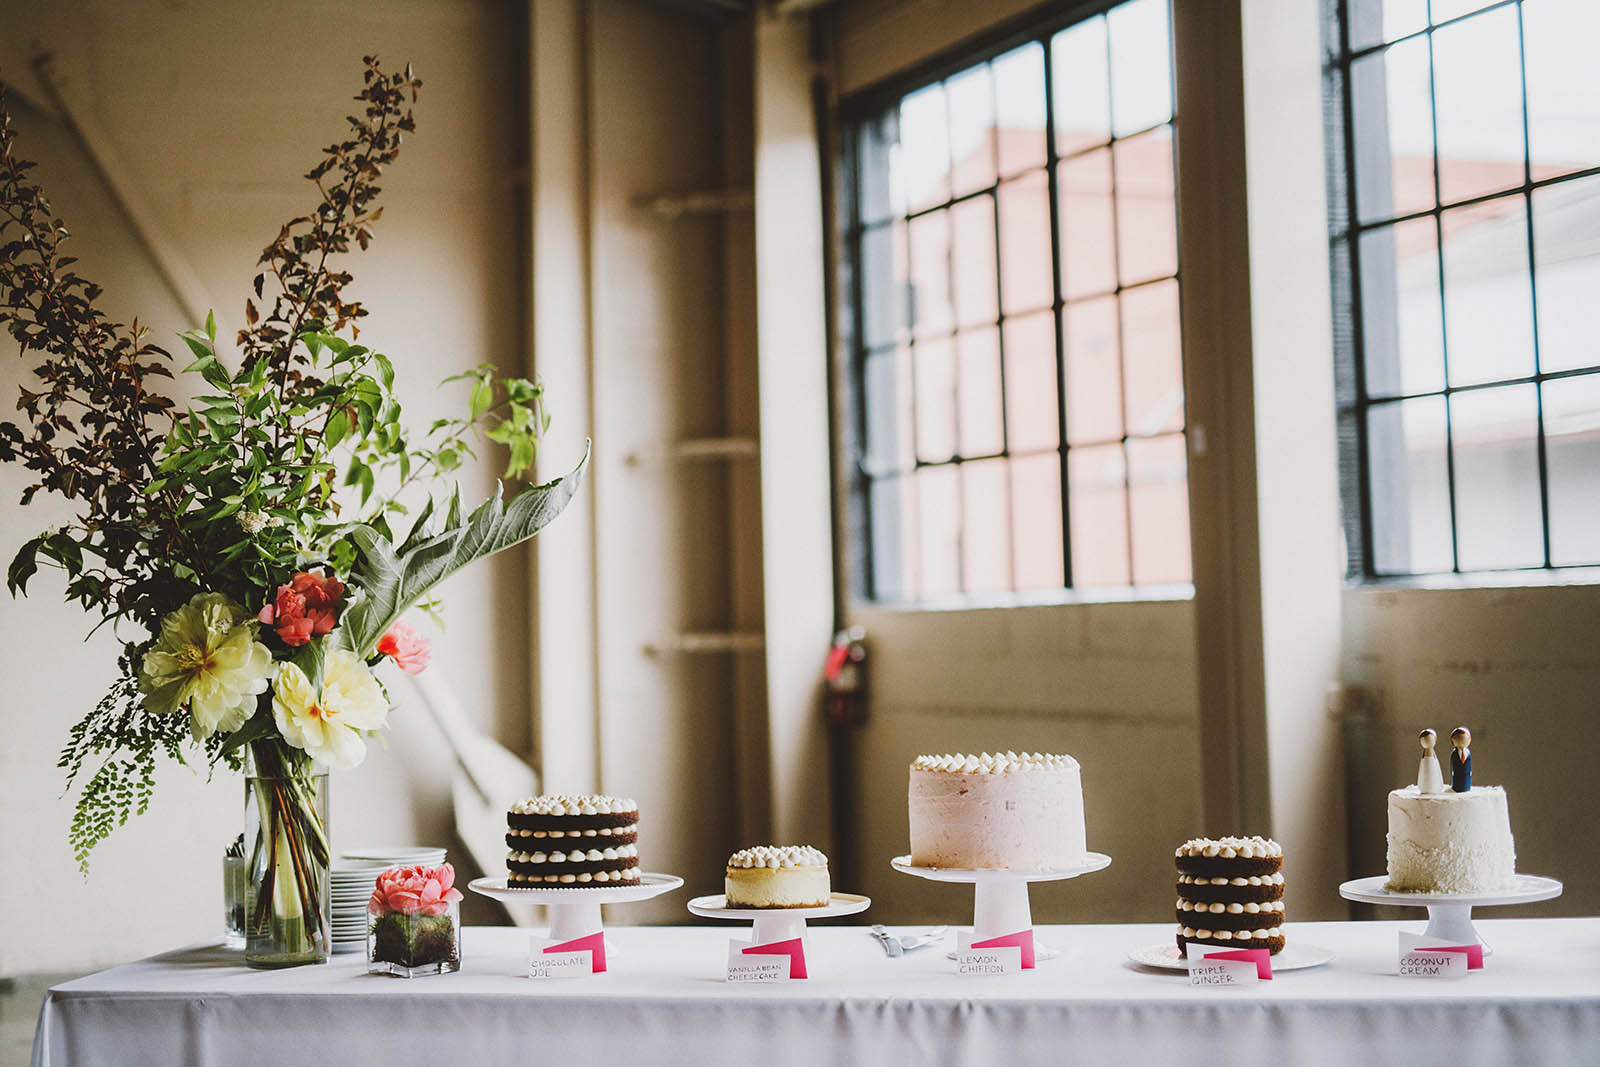 Table full of wedding cake  | Castaway Portland Wedding